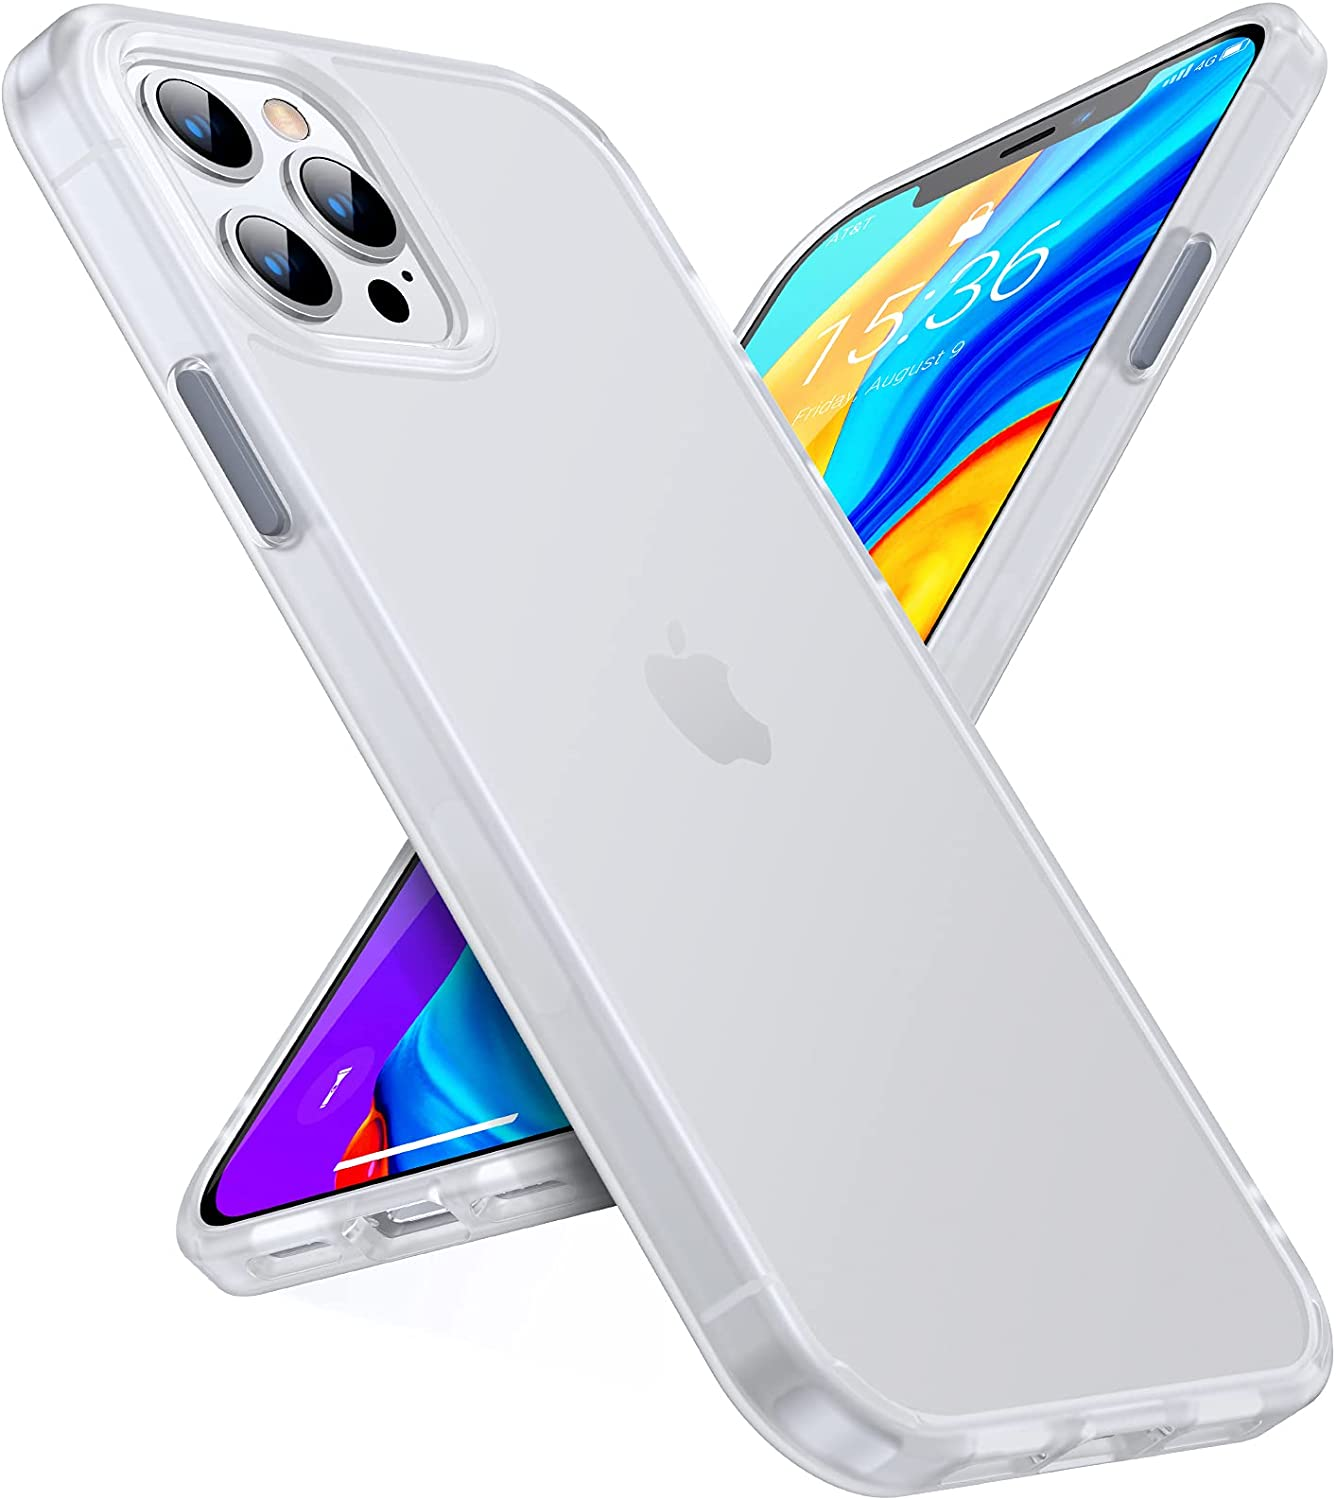 TORRAS Shockproof Compatible for iPhone 12 Pro Max Case 6.7 Inch, [Military Grade Drop Protection], Translucent Matte Case Compatible for iPhone 12 Pro Max Phone Case, [Guardian Series], White